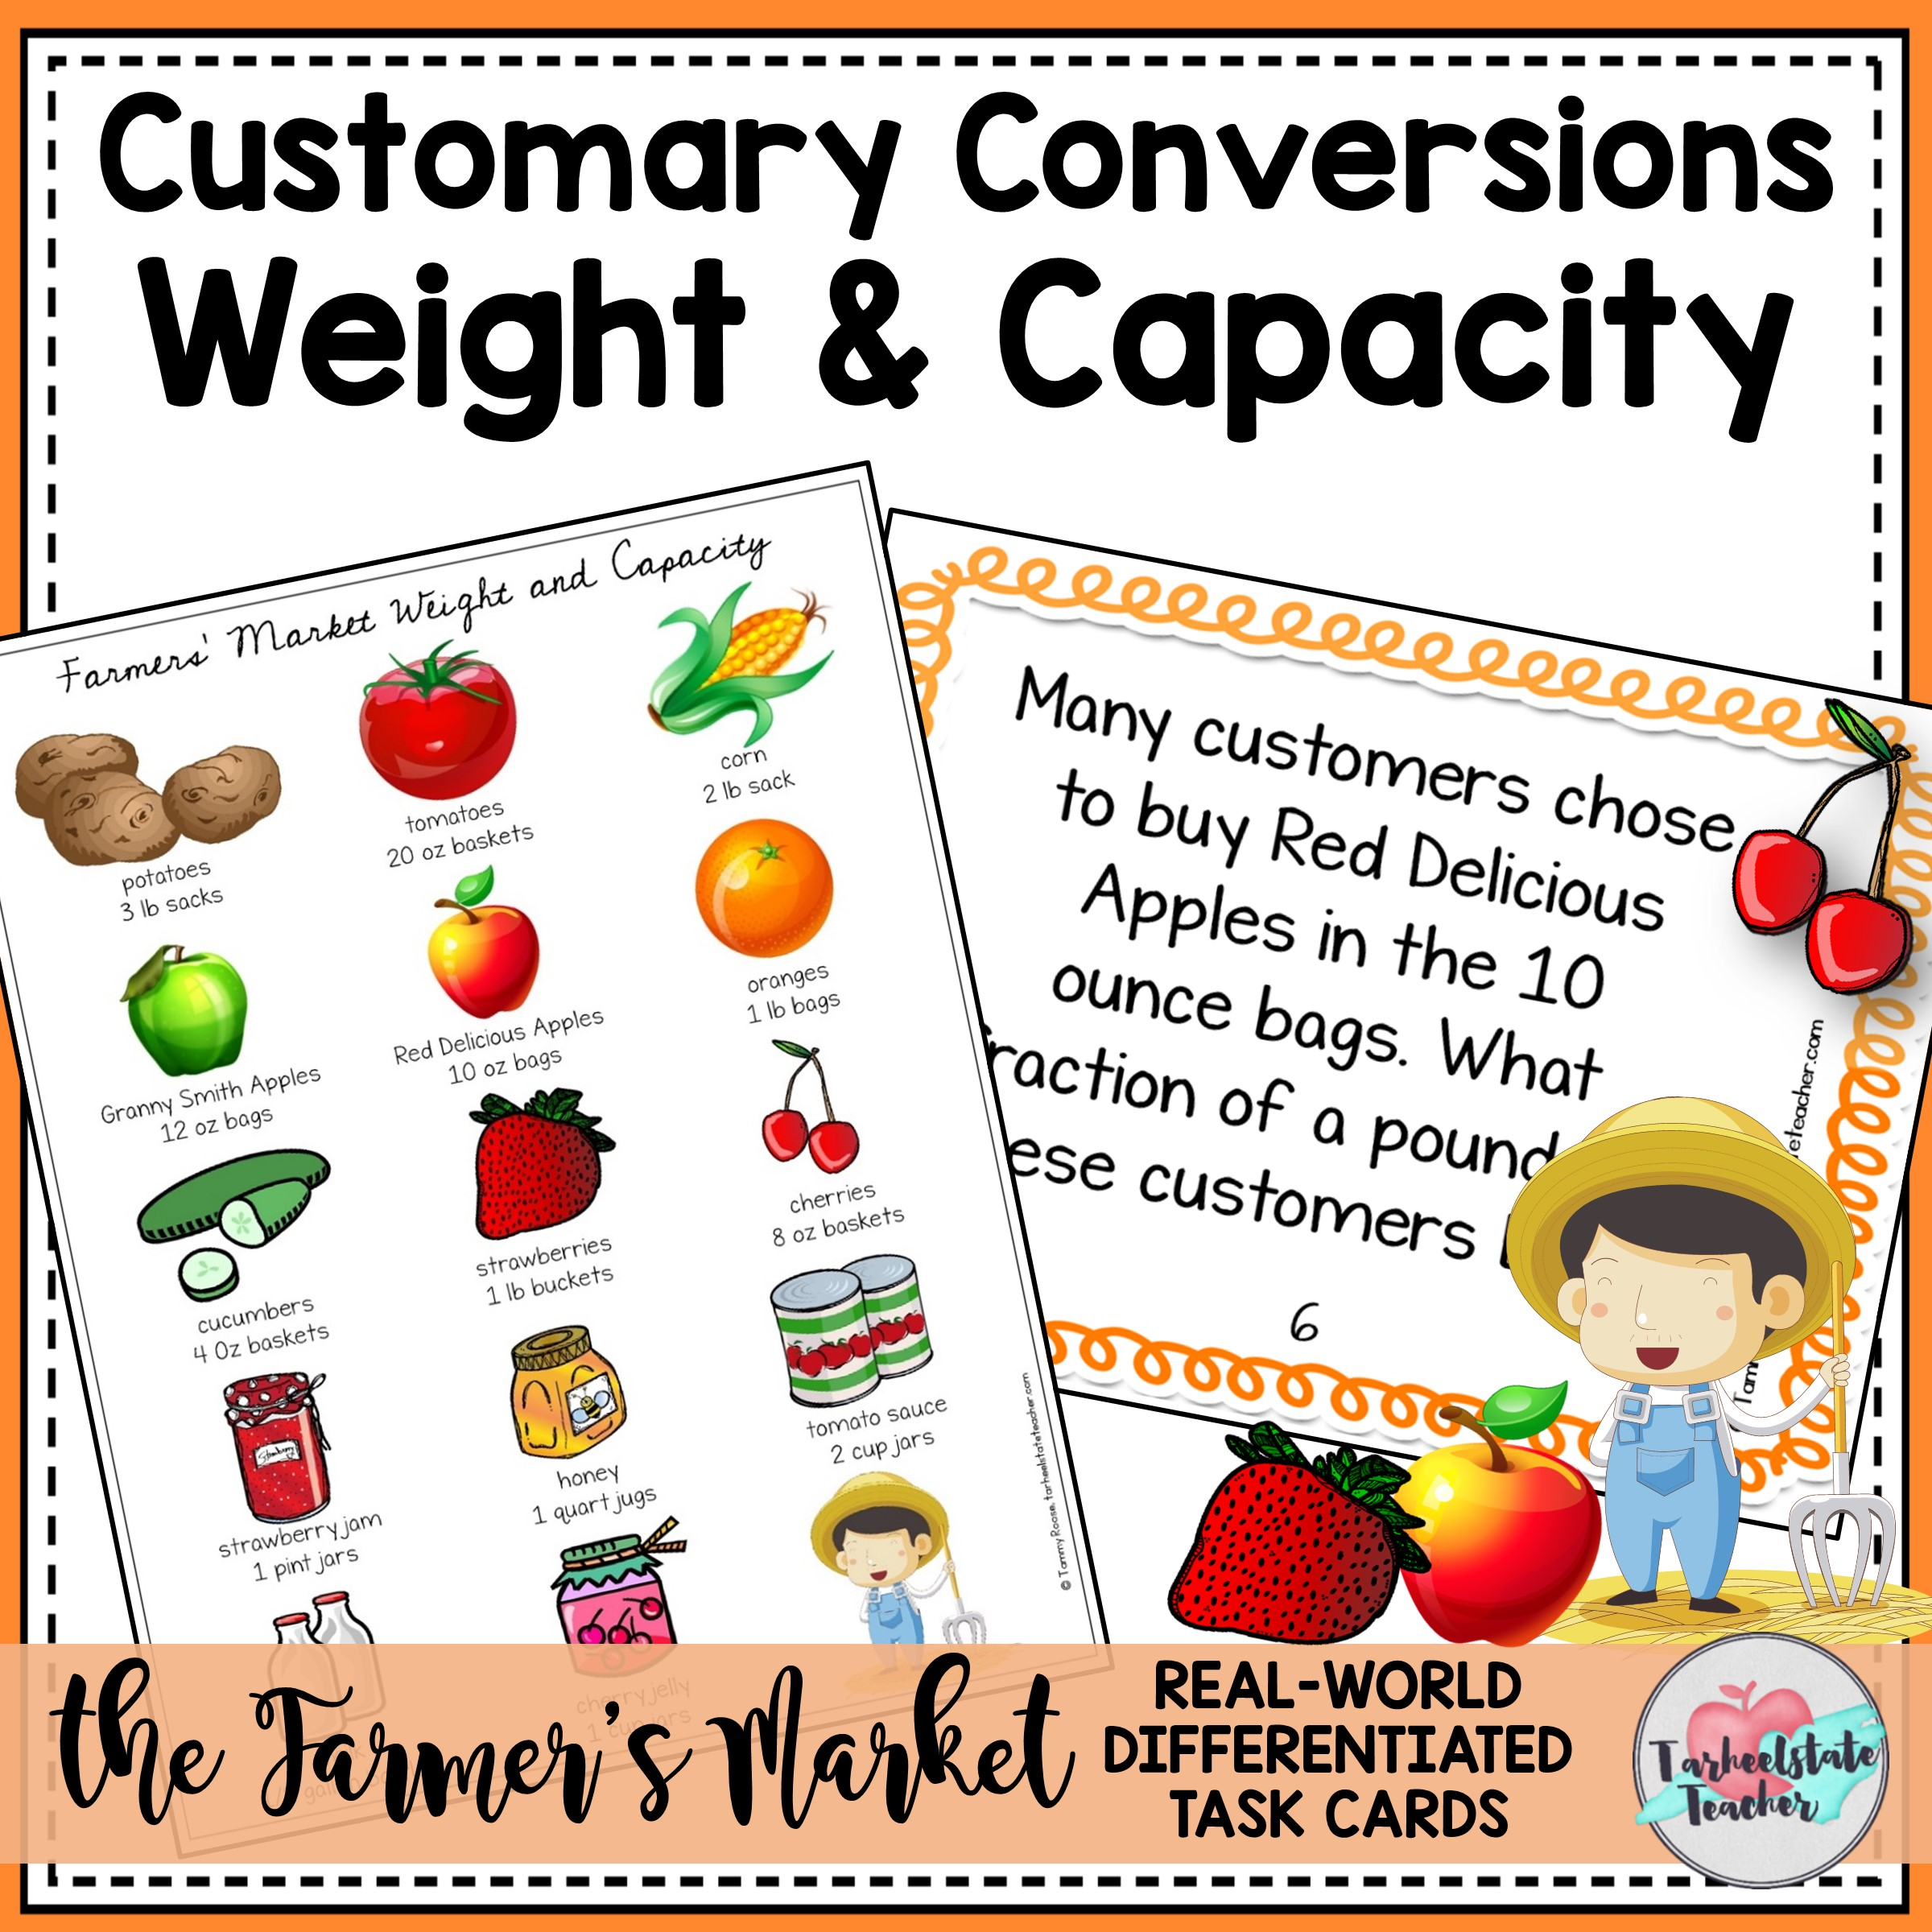 customary capacity weight conversions task cards.jpg